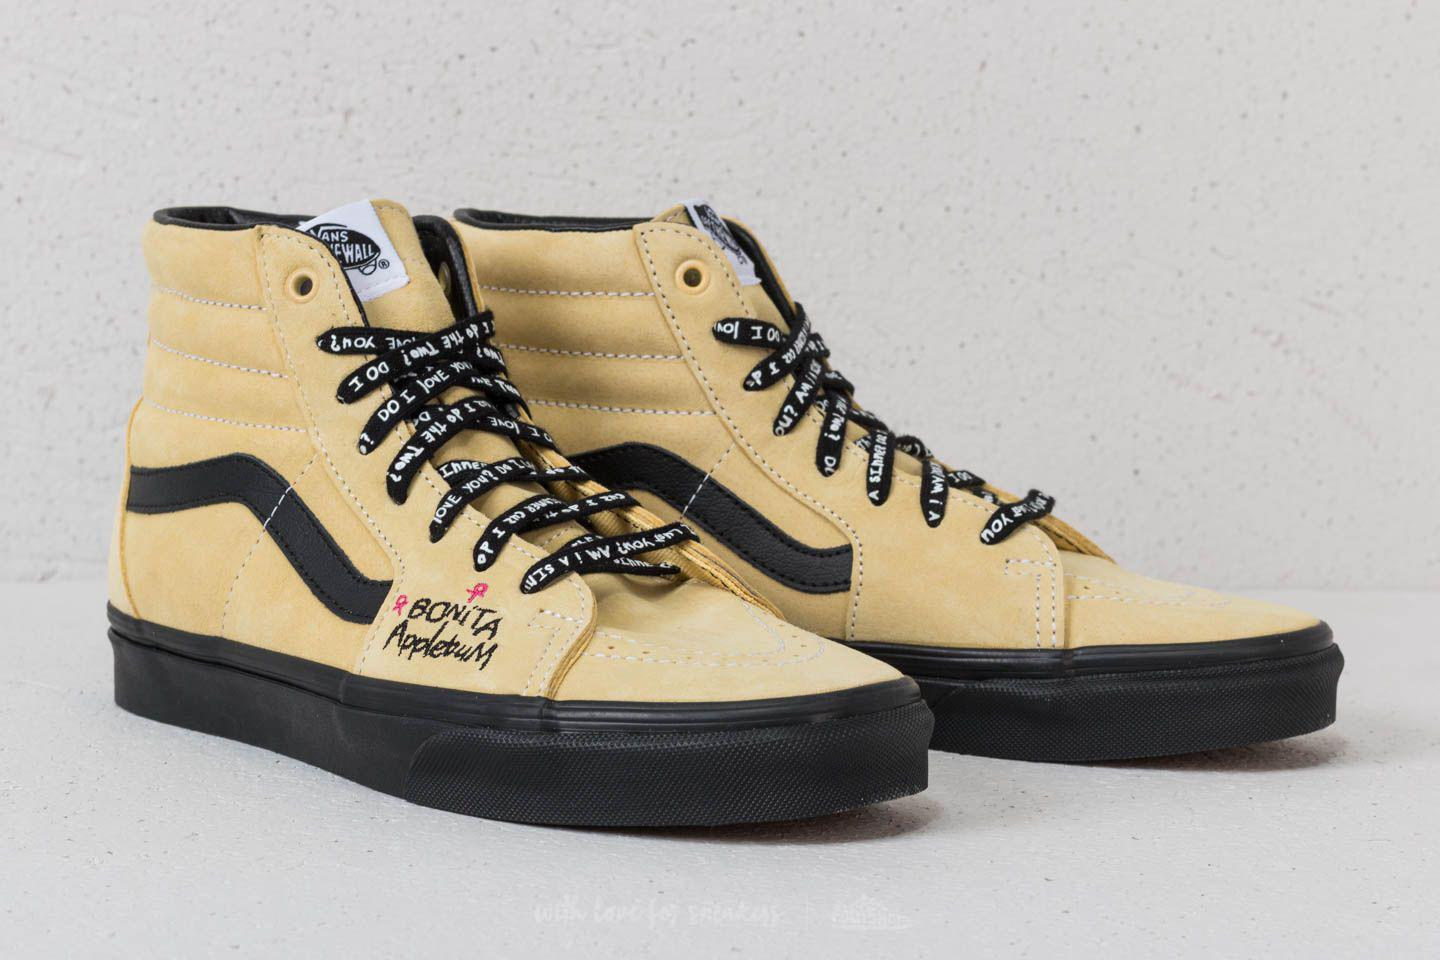 lowest price get new 100% authentic Vans Suede Sk8-hi (a Tribe Called Quest) Mellow Yellow/ Spec ...